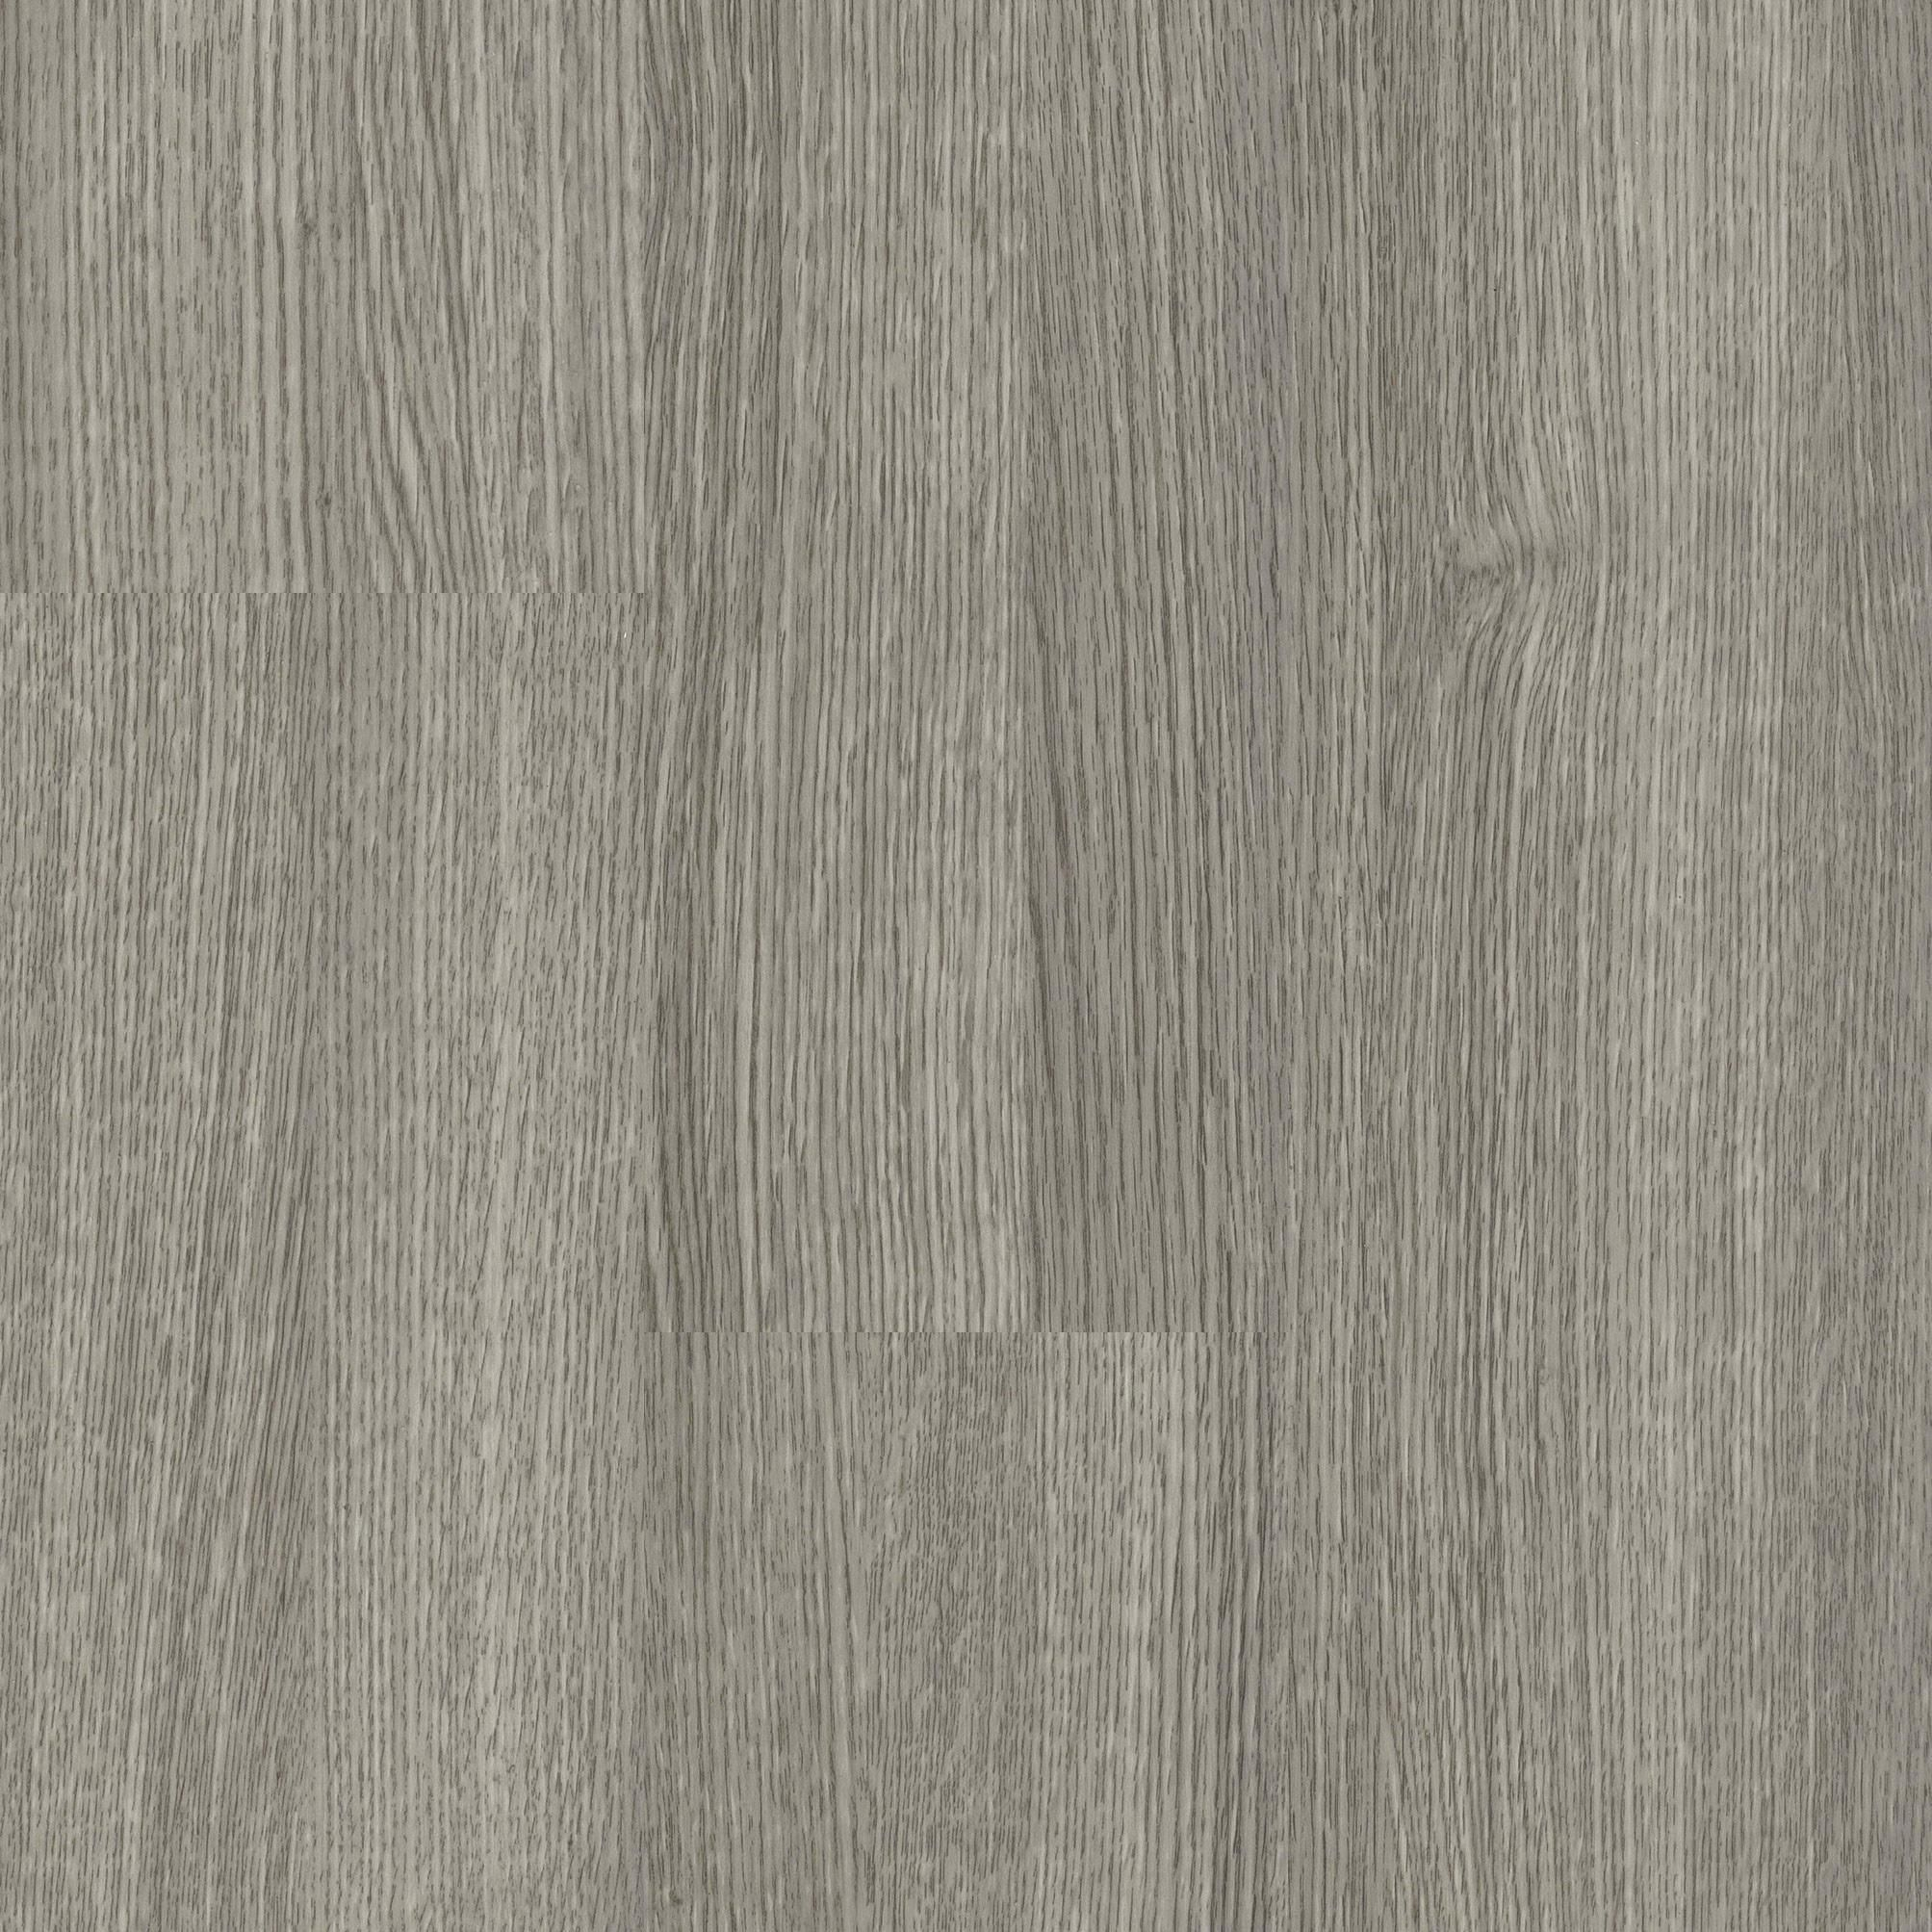 Mohawk urban patina skyscraper waterproof vinyl flooring for Mohawk vinyl flooring